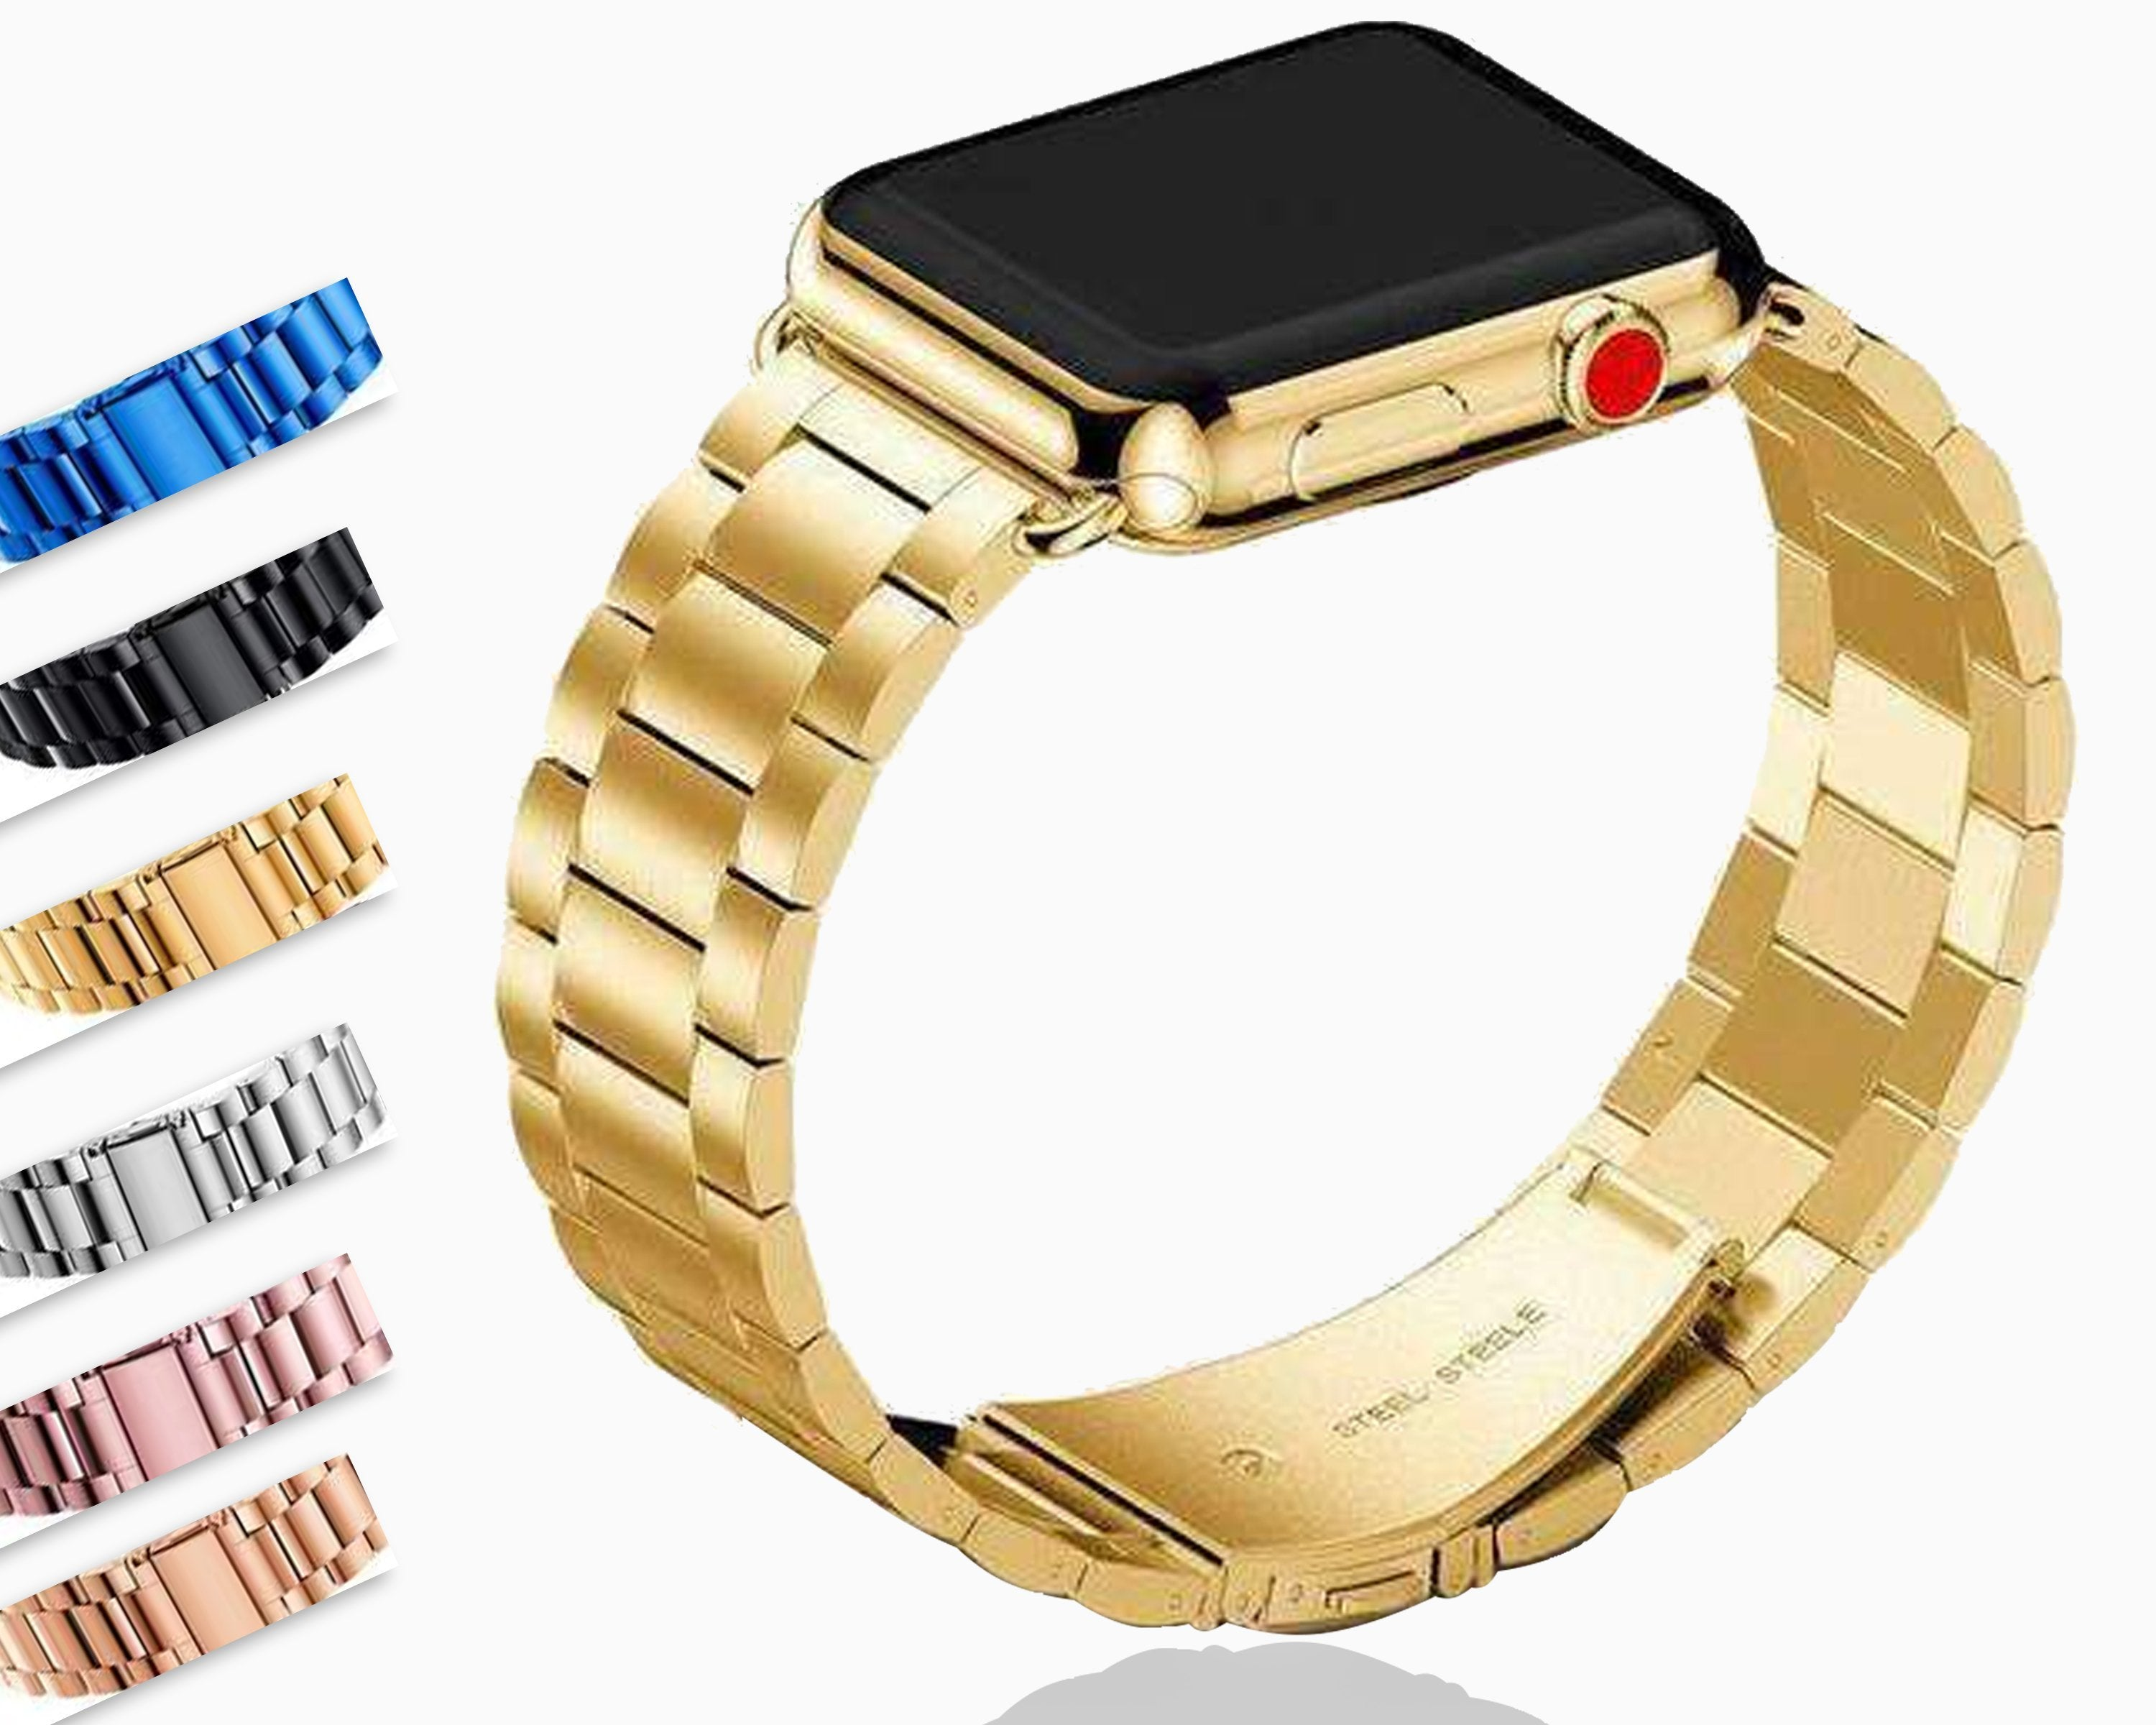 Bands Compatible for iWatch 44mm//42mm,44mm//42mm Leather Strap Wrist Band Replacement W Silver Metal Clasp Compatible with iWatch Series 1 2 3 4 5 44mm//42mm Pretty Yellow and Red Rose Pattern